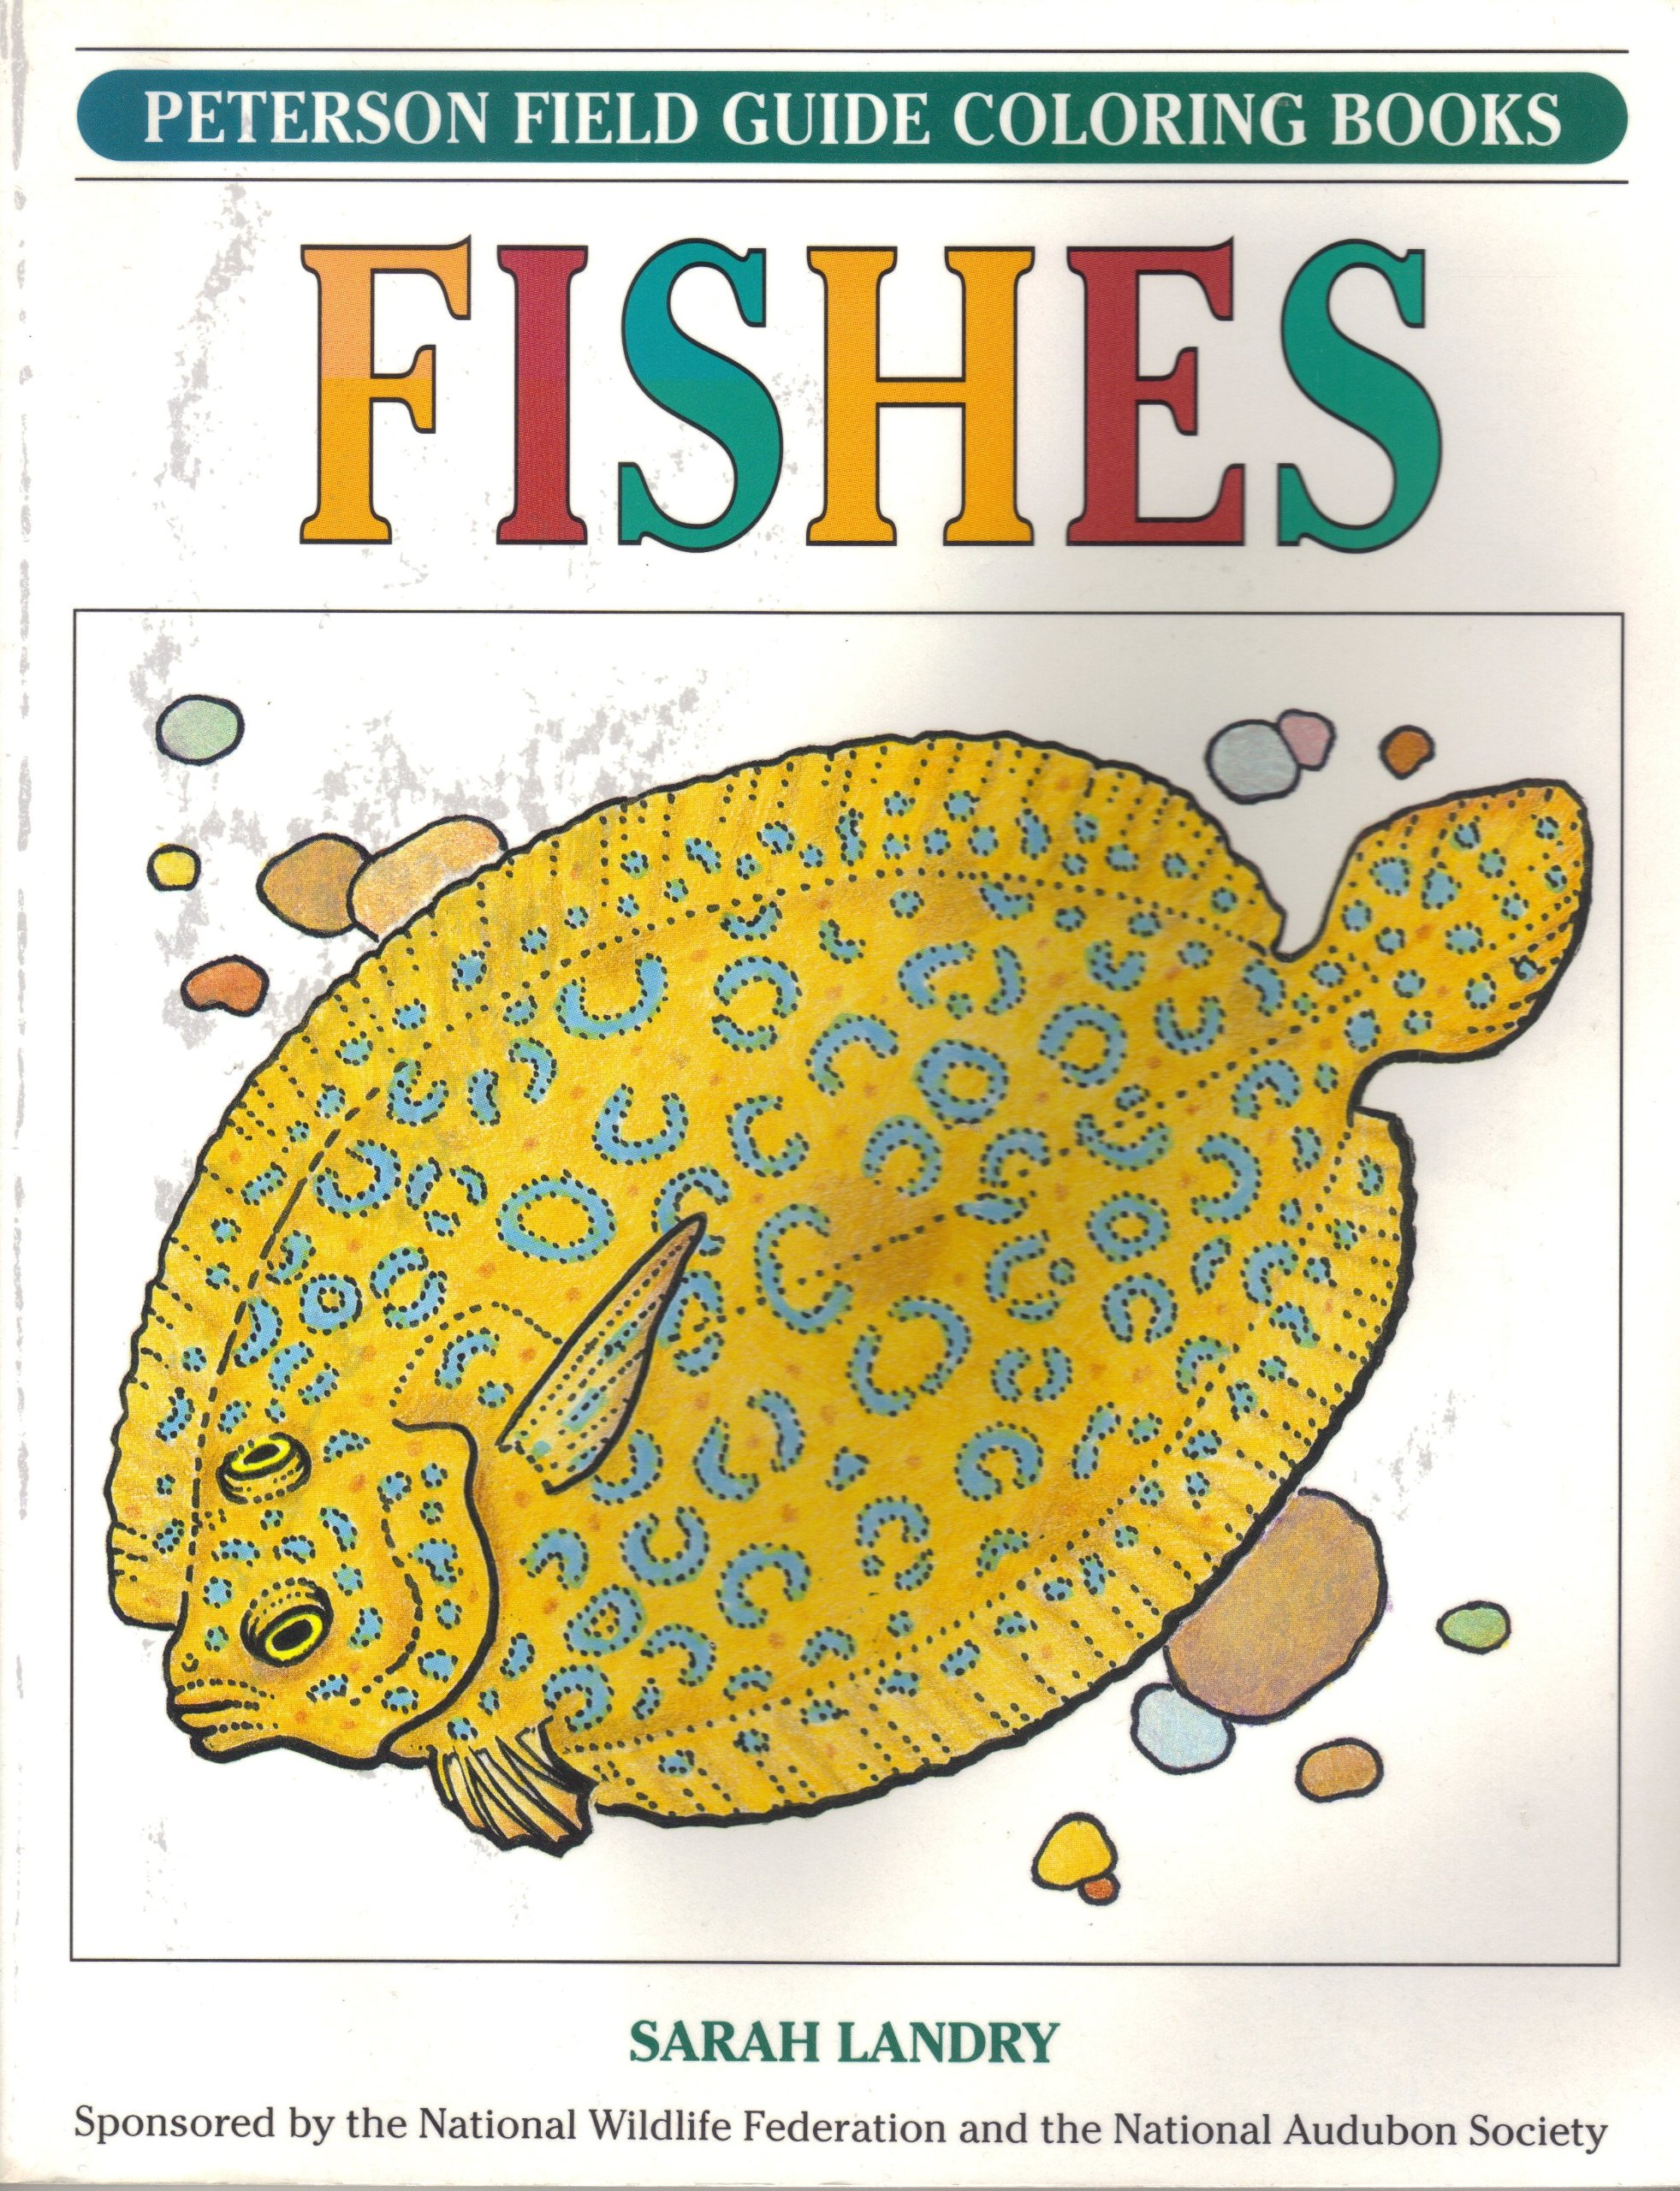 A Field Guide to Fishes Coloring Book (Peterson Field Guide Coloring Books)